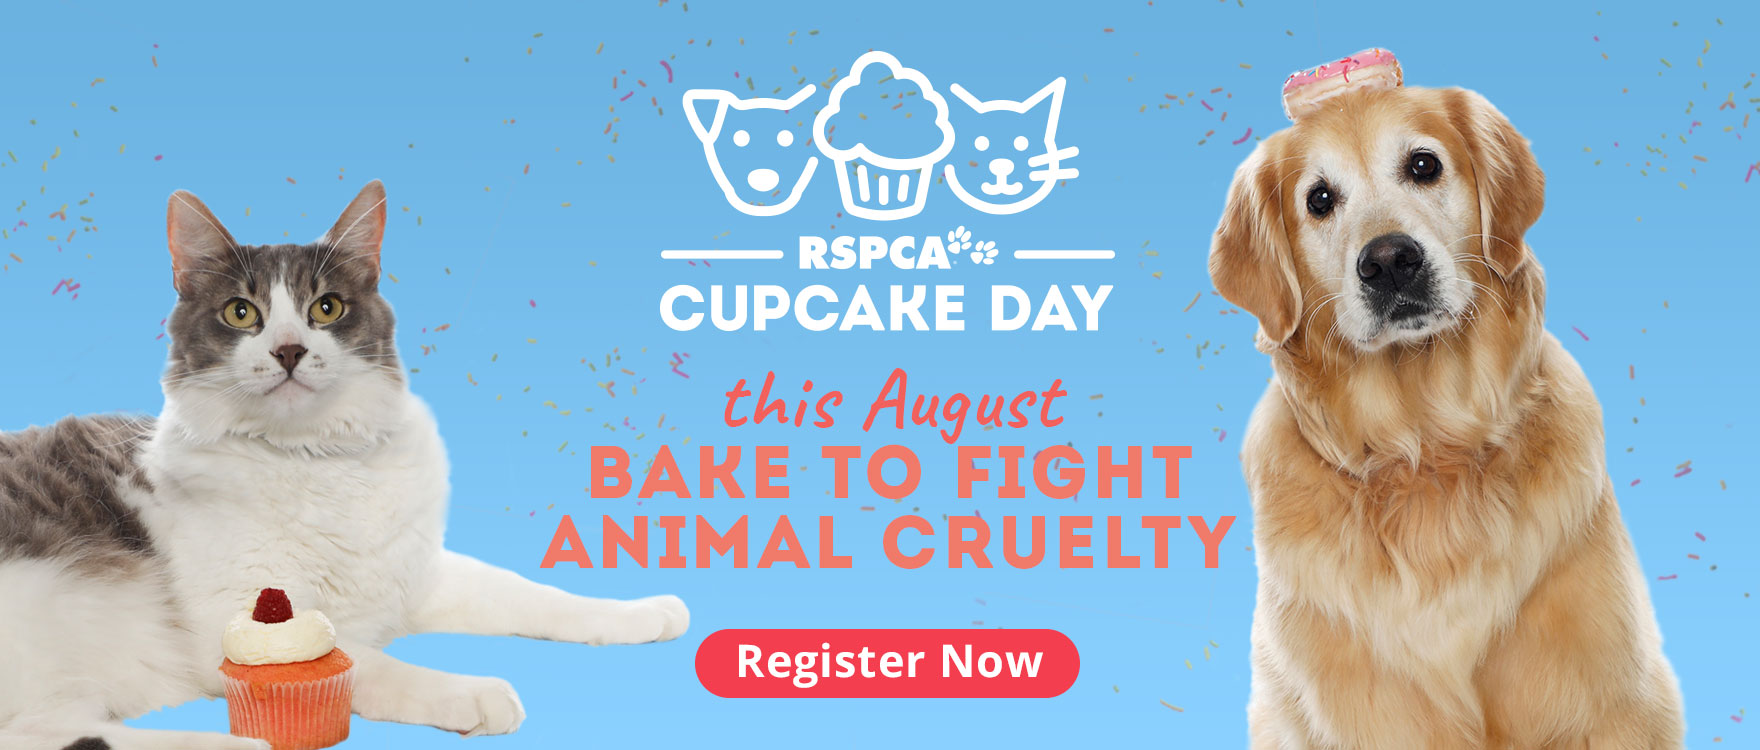 Cupcake Day - Register Now!